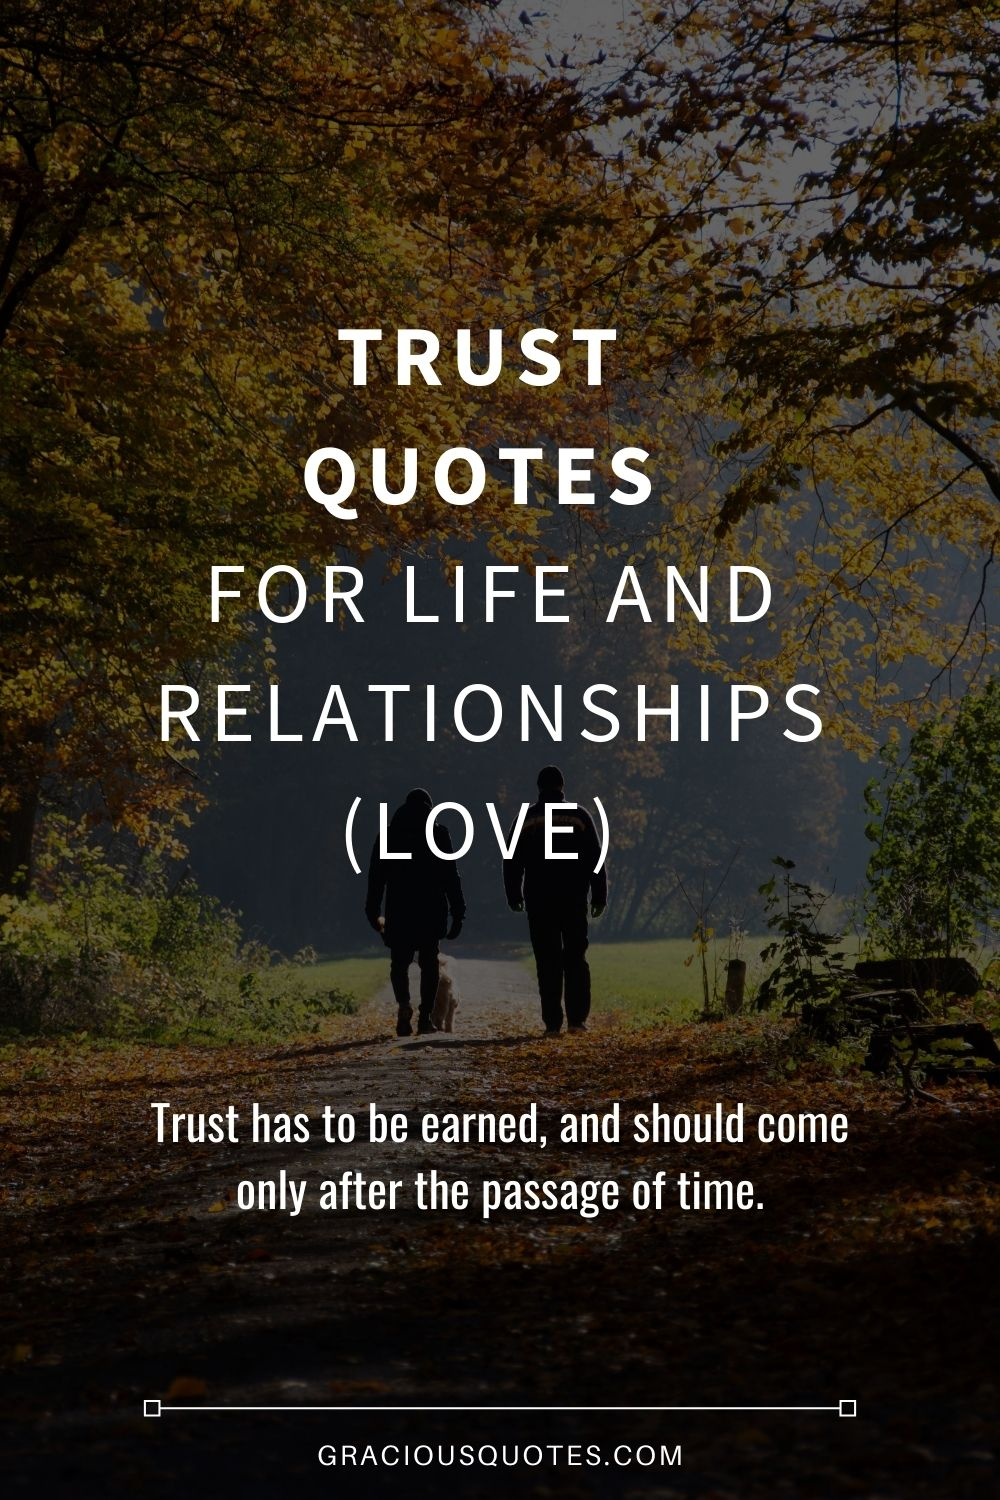 62 Trust Quotes For Life And Relationships Love